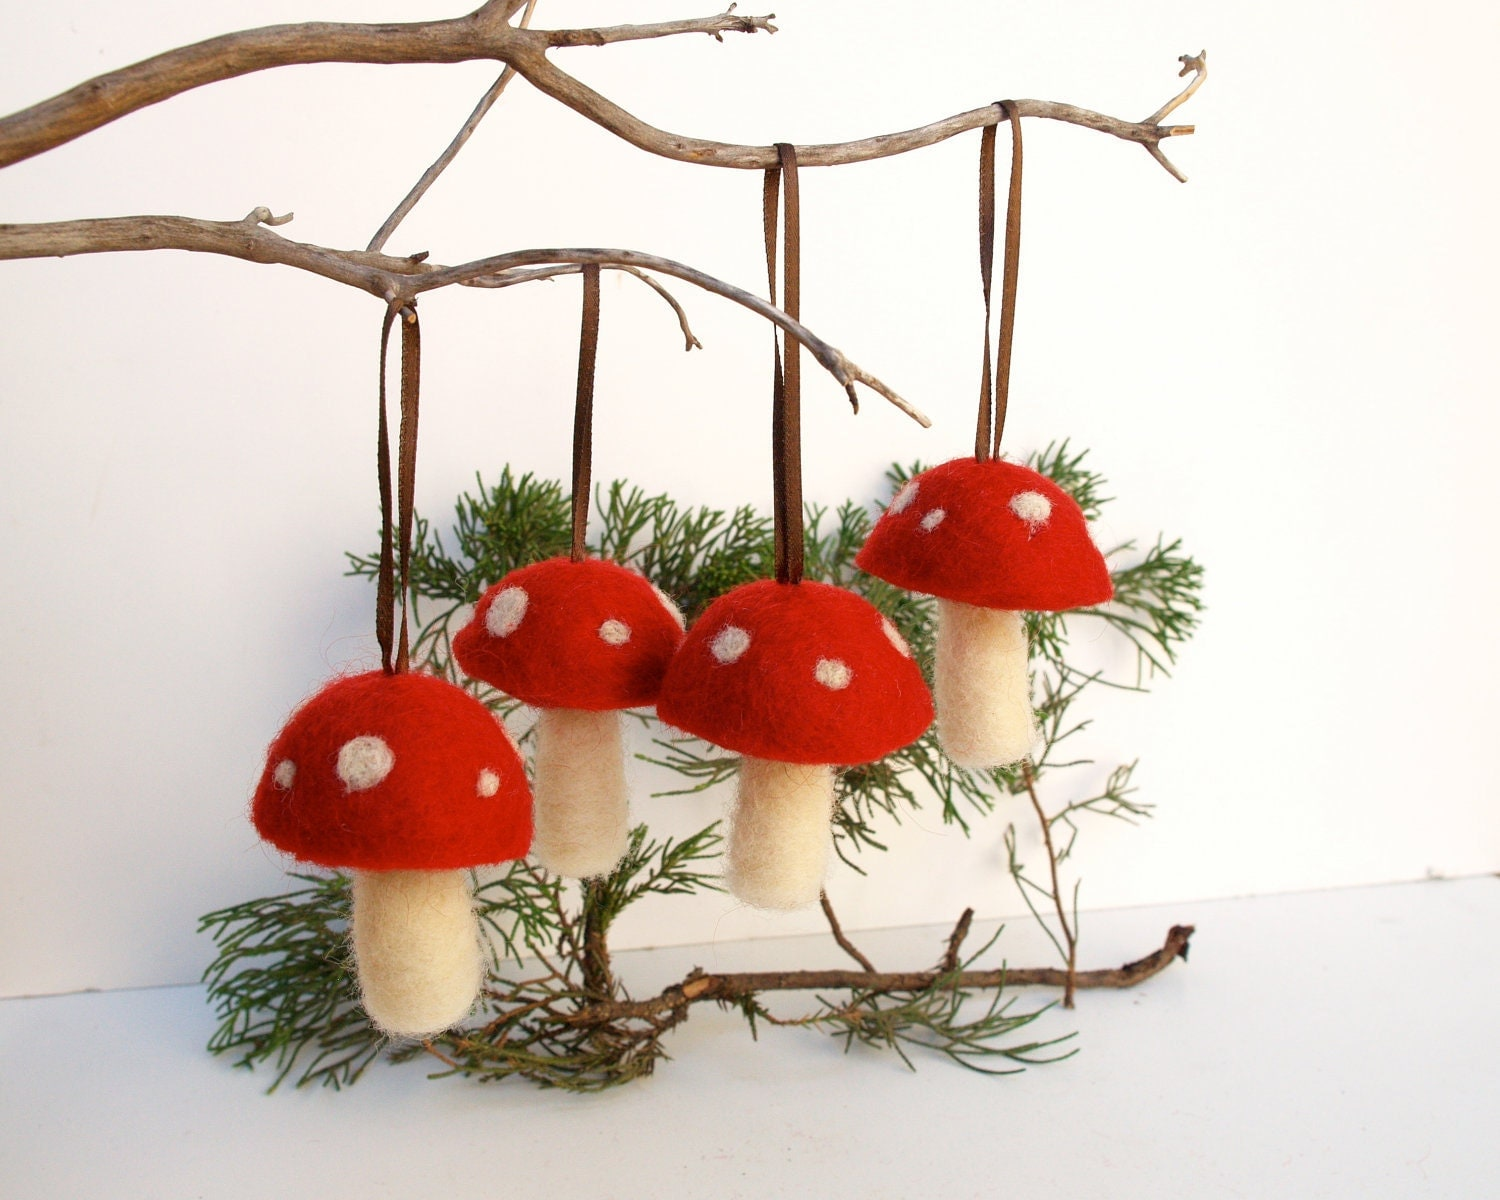 Waldorf ornaments red toadstool mushroom decoration by fairyfolk - Hanging christmas ornaments ...